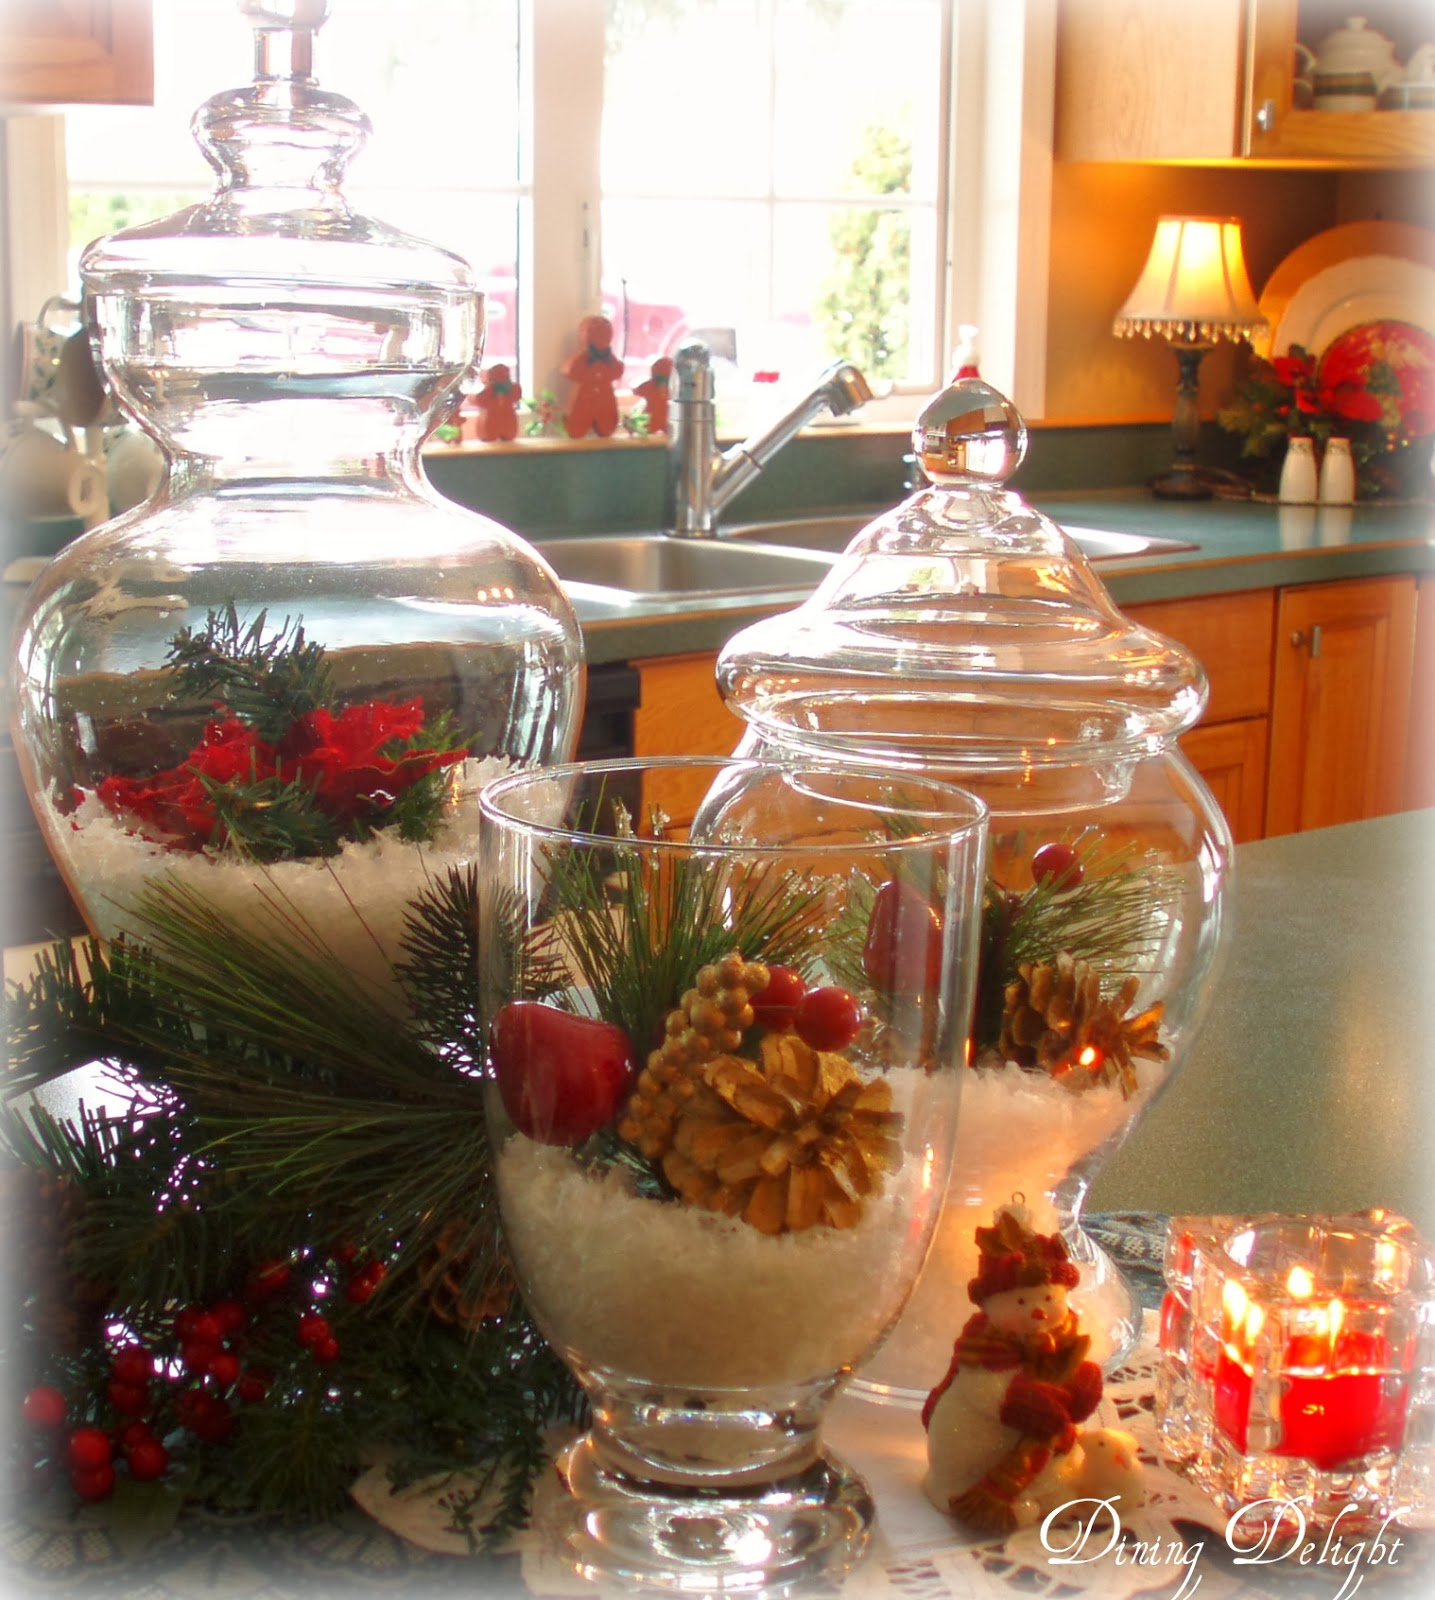 Christmas Decorating Ideas Kitchen Island : Dining delight christmas home tour